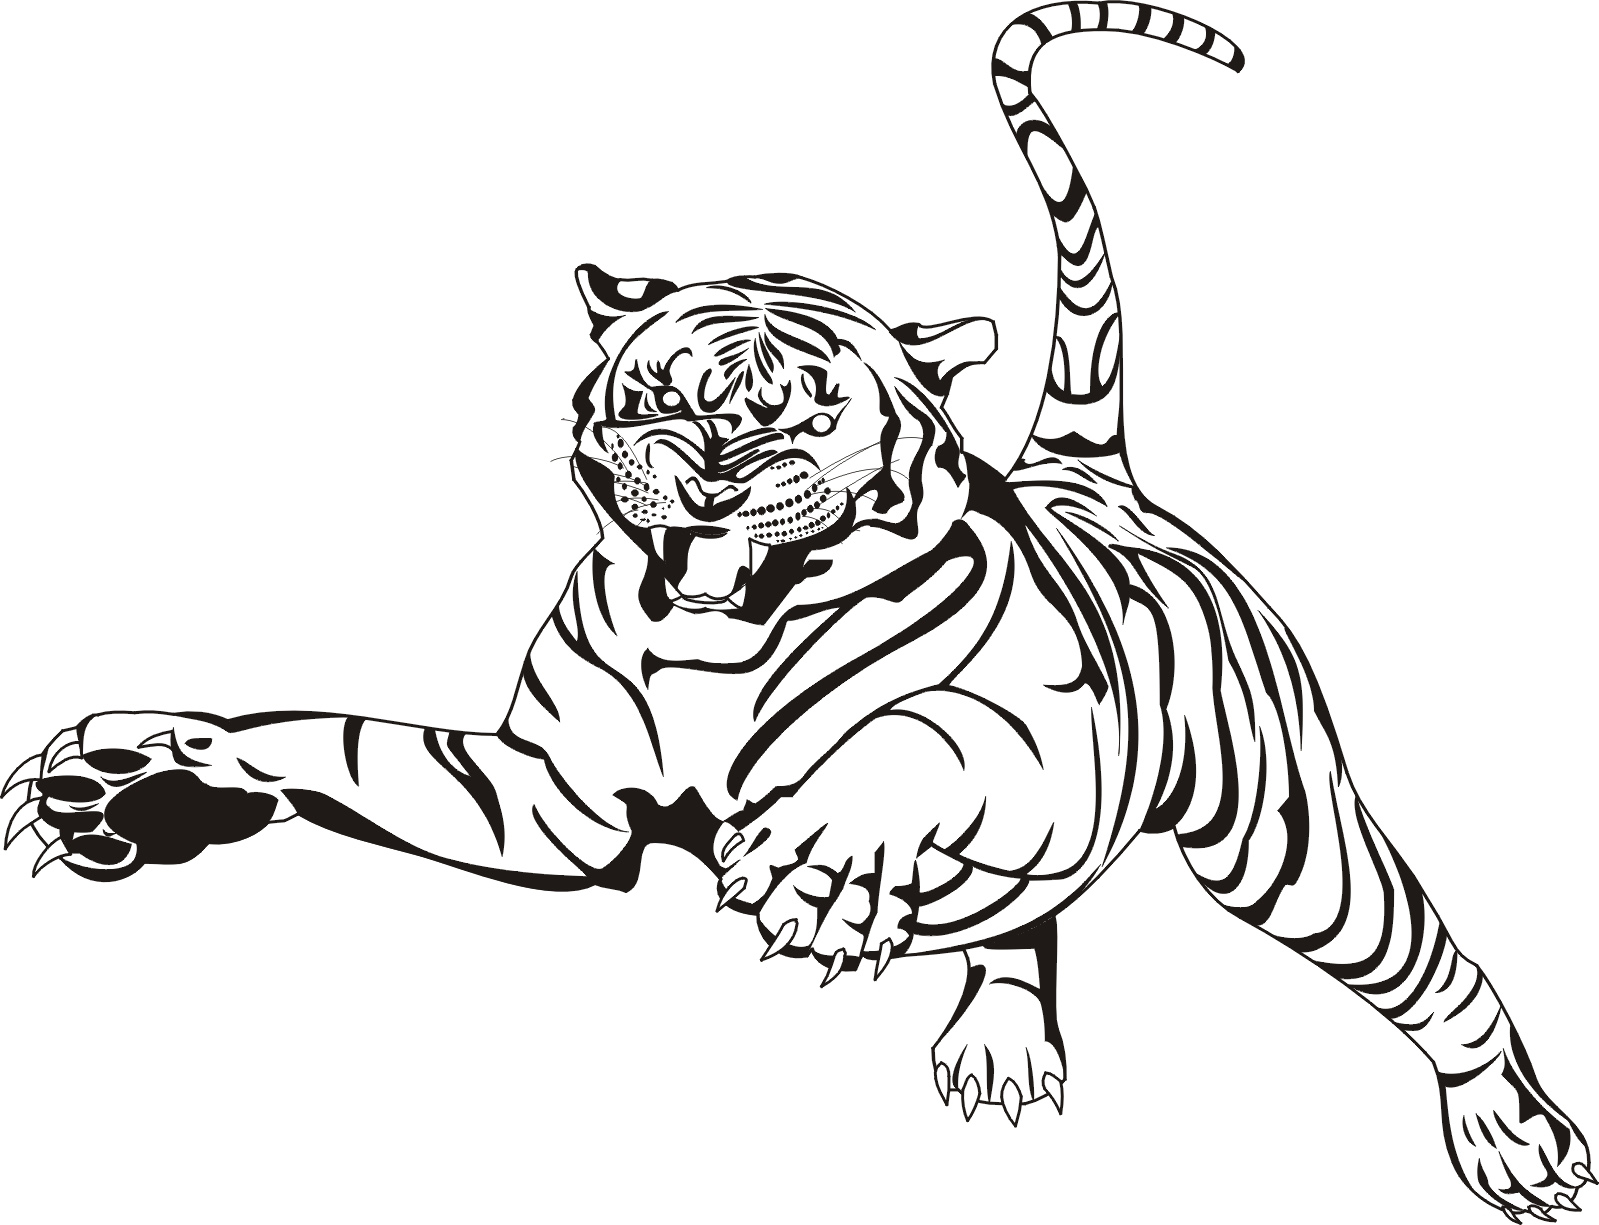 Tiger Coloring Pages | Free download on ClipArtMag